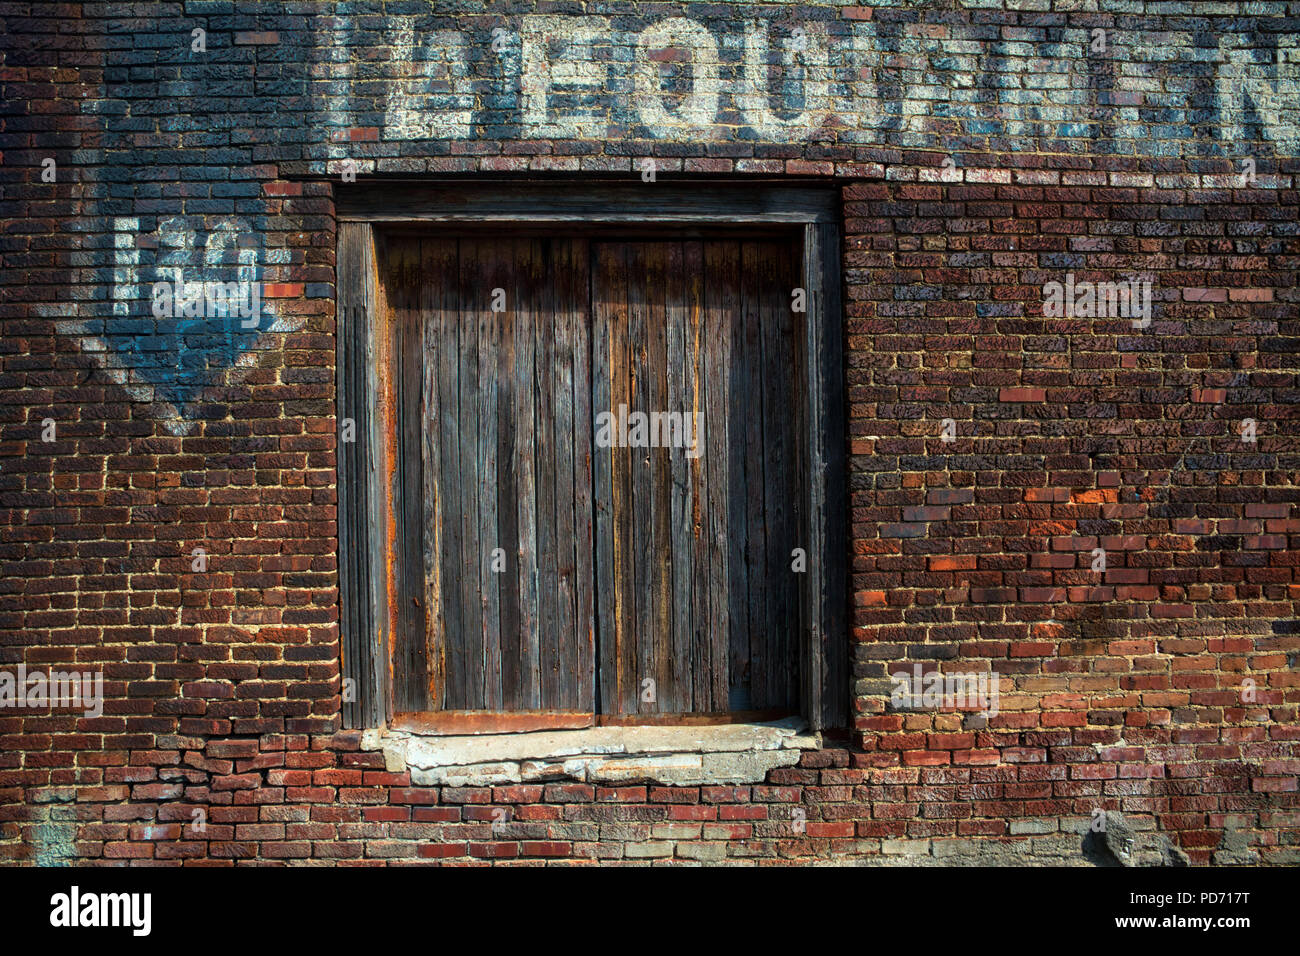 A weathered wooden door and old, fading advertisement painted on the side of a red brick wall in Nashville, Tennessee - Stock Image